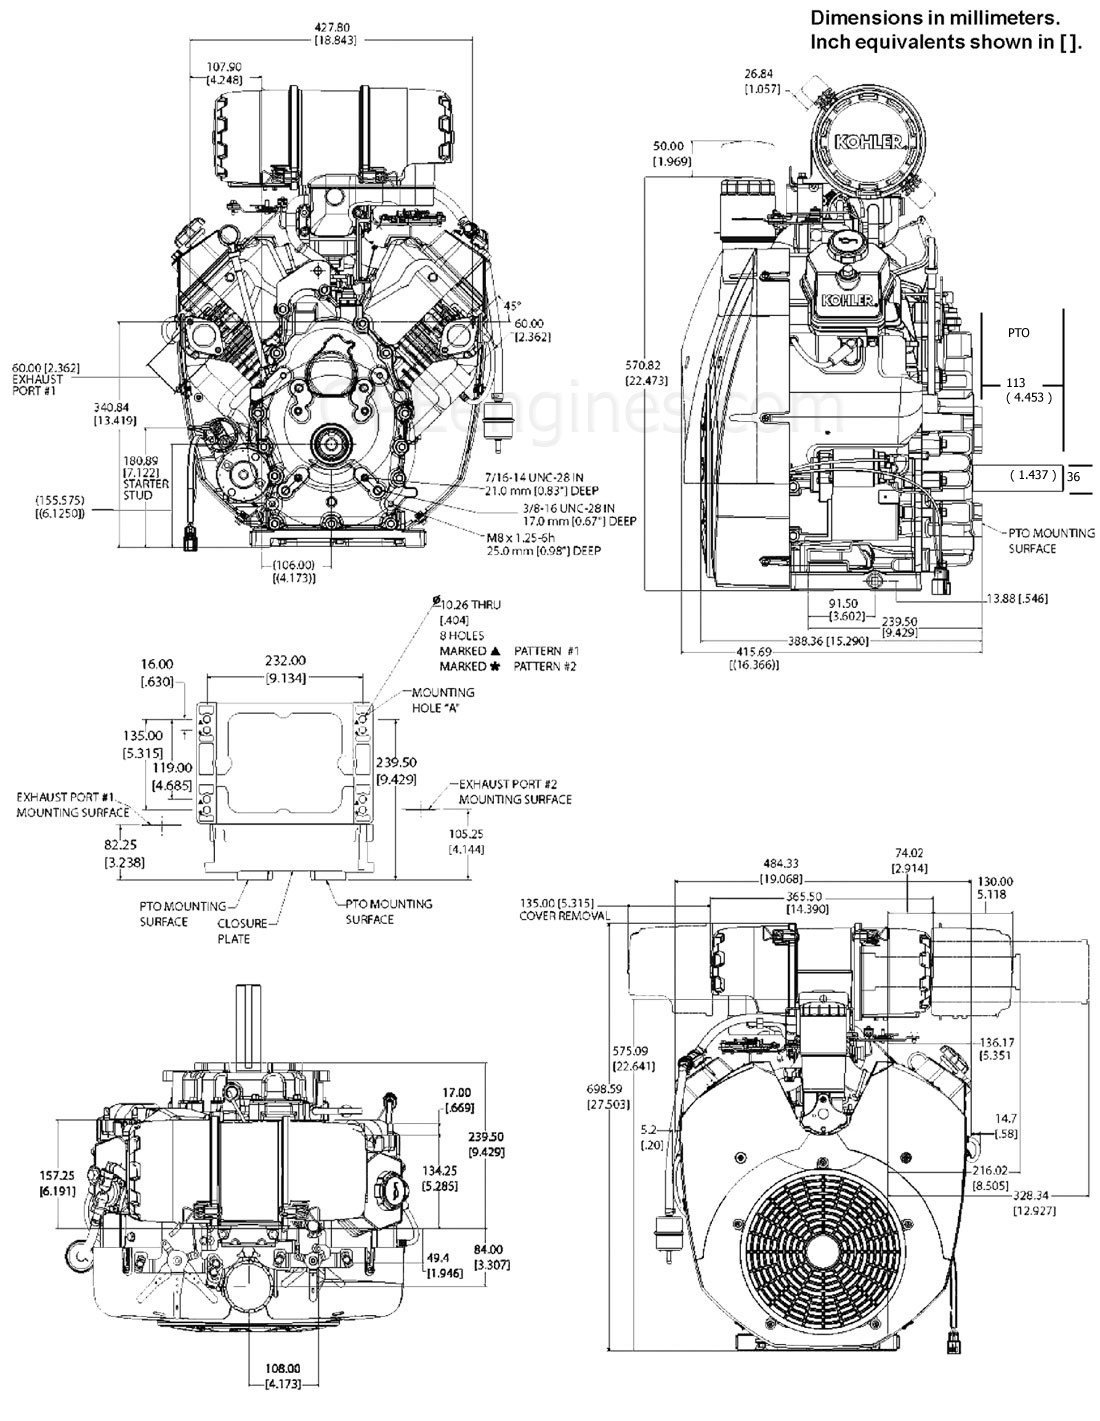 Ch940 Ch960 Ch980 Ch1000 Drawings on 25 hp kohler wiring diagram